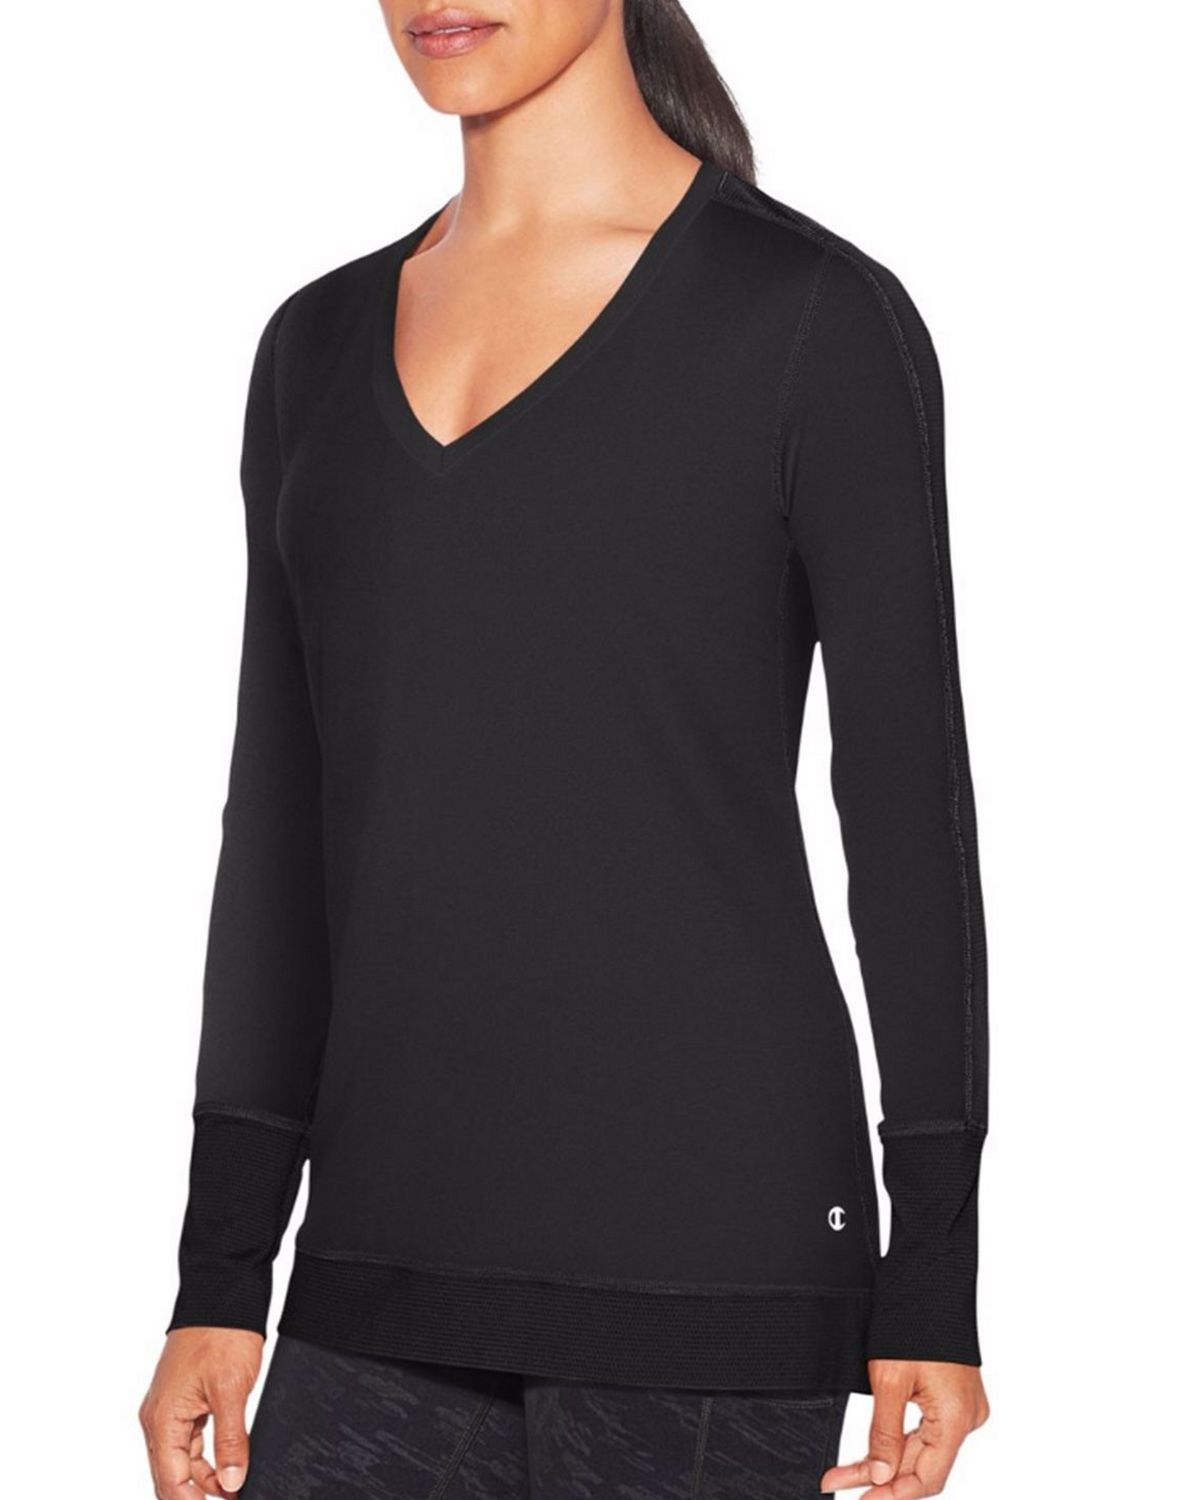 Champion W9914 Womens Long Sleeve Tee - Black - M W9914